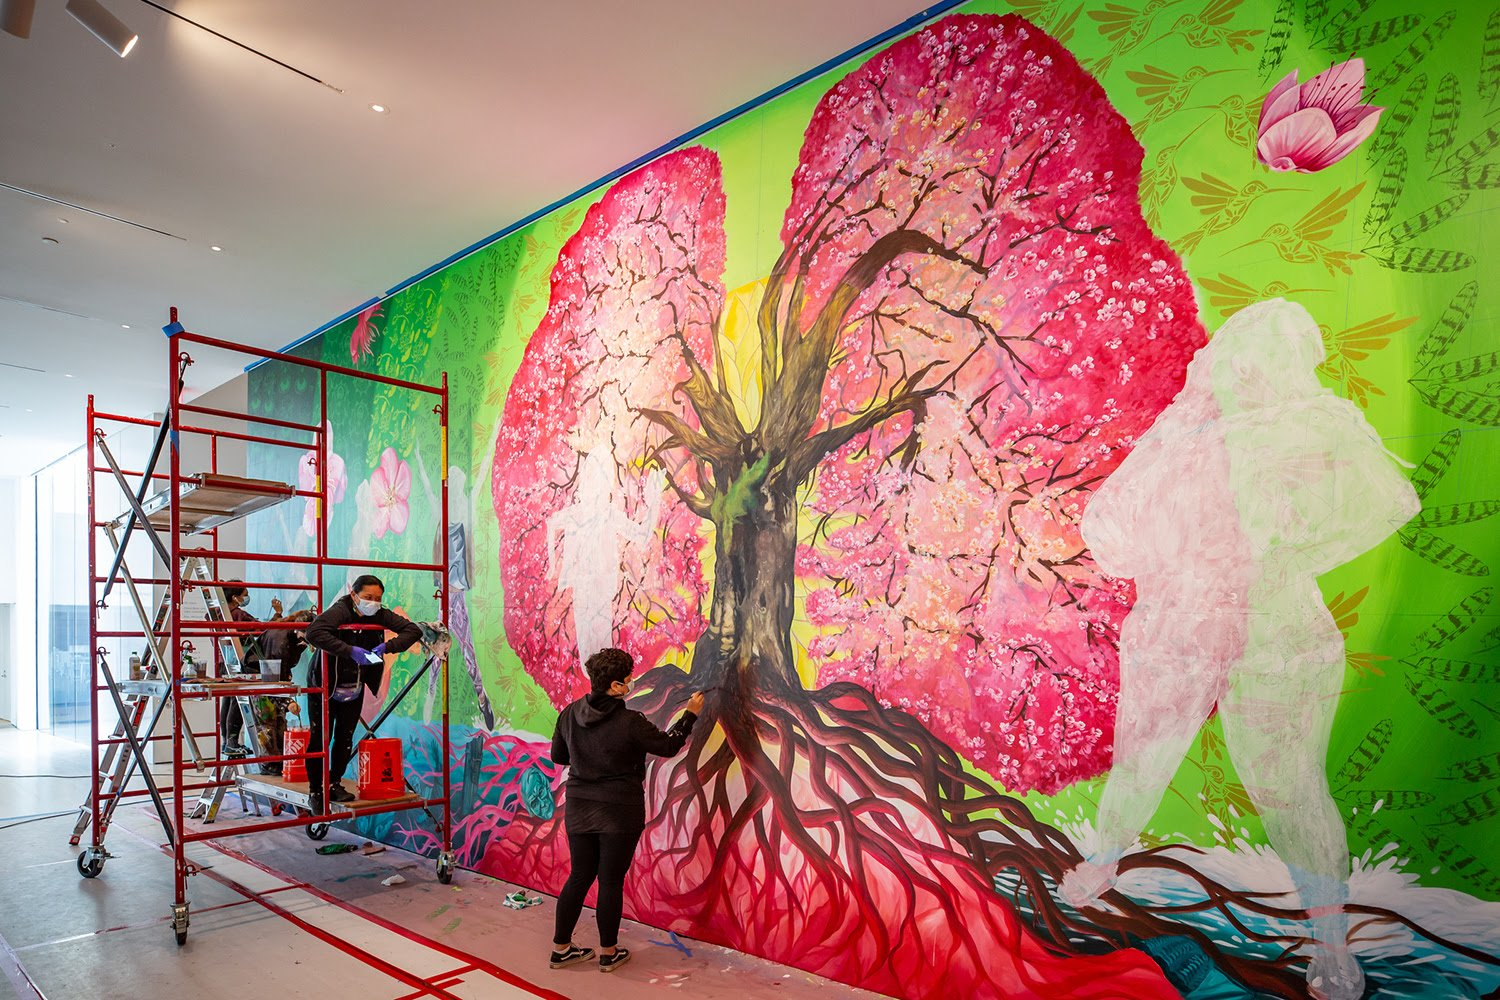 Twin Walls Mural Company at work on their mural commission at SFMOMA, 2020; photo: Katherine Du Tiel, courtesy SFMOMA.